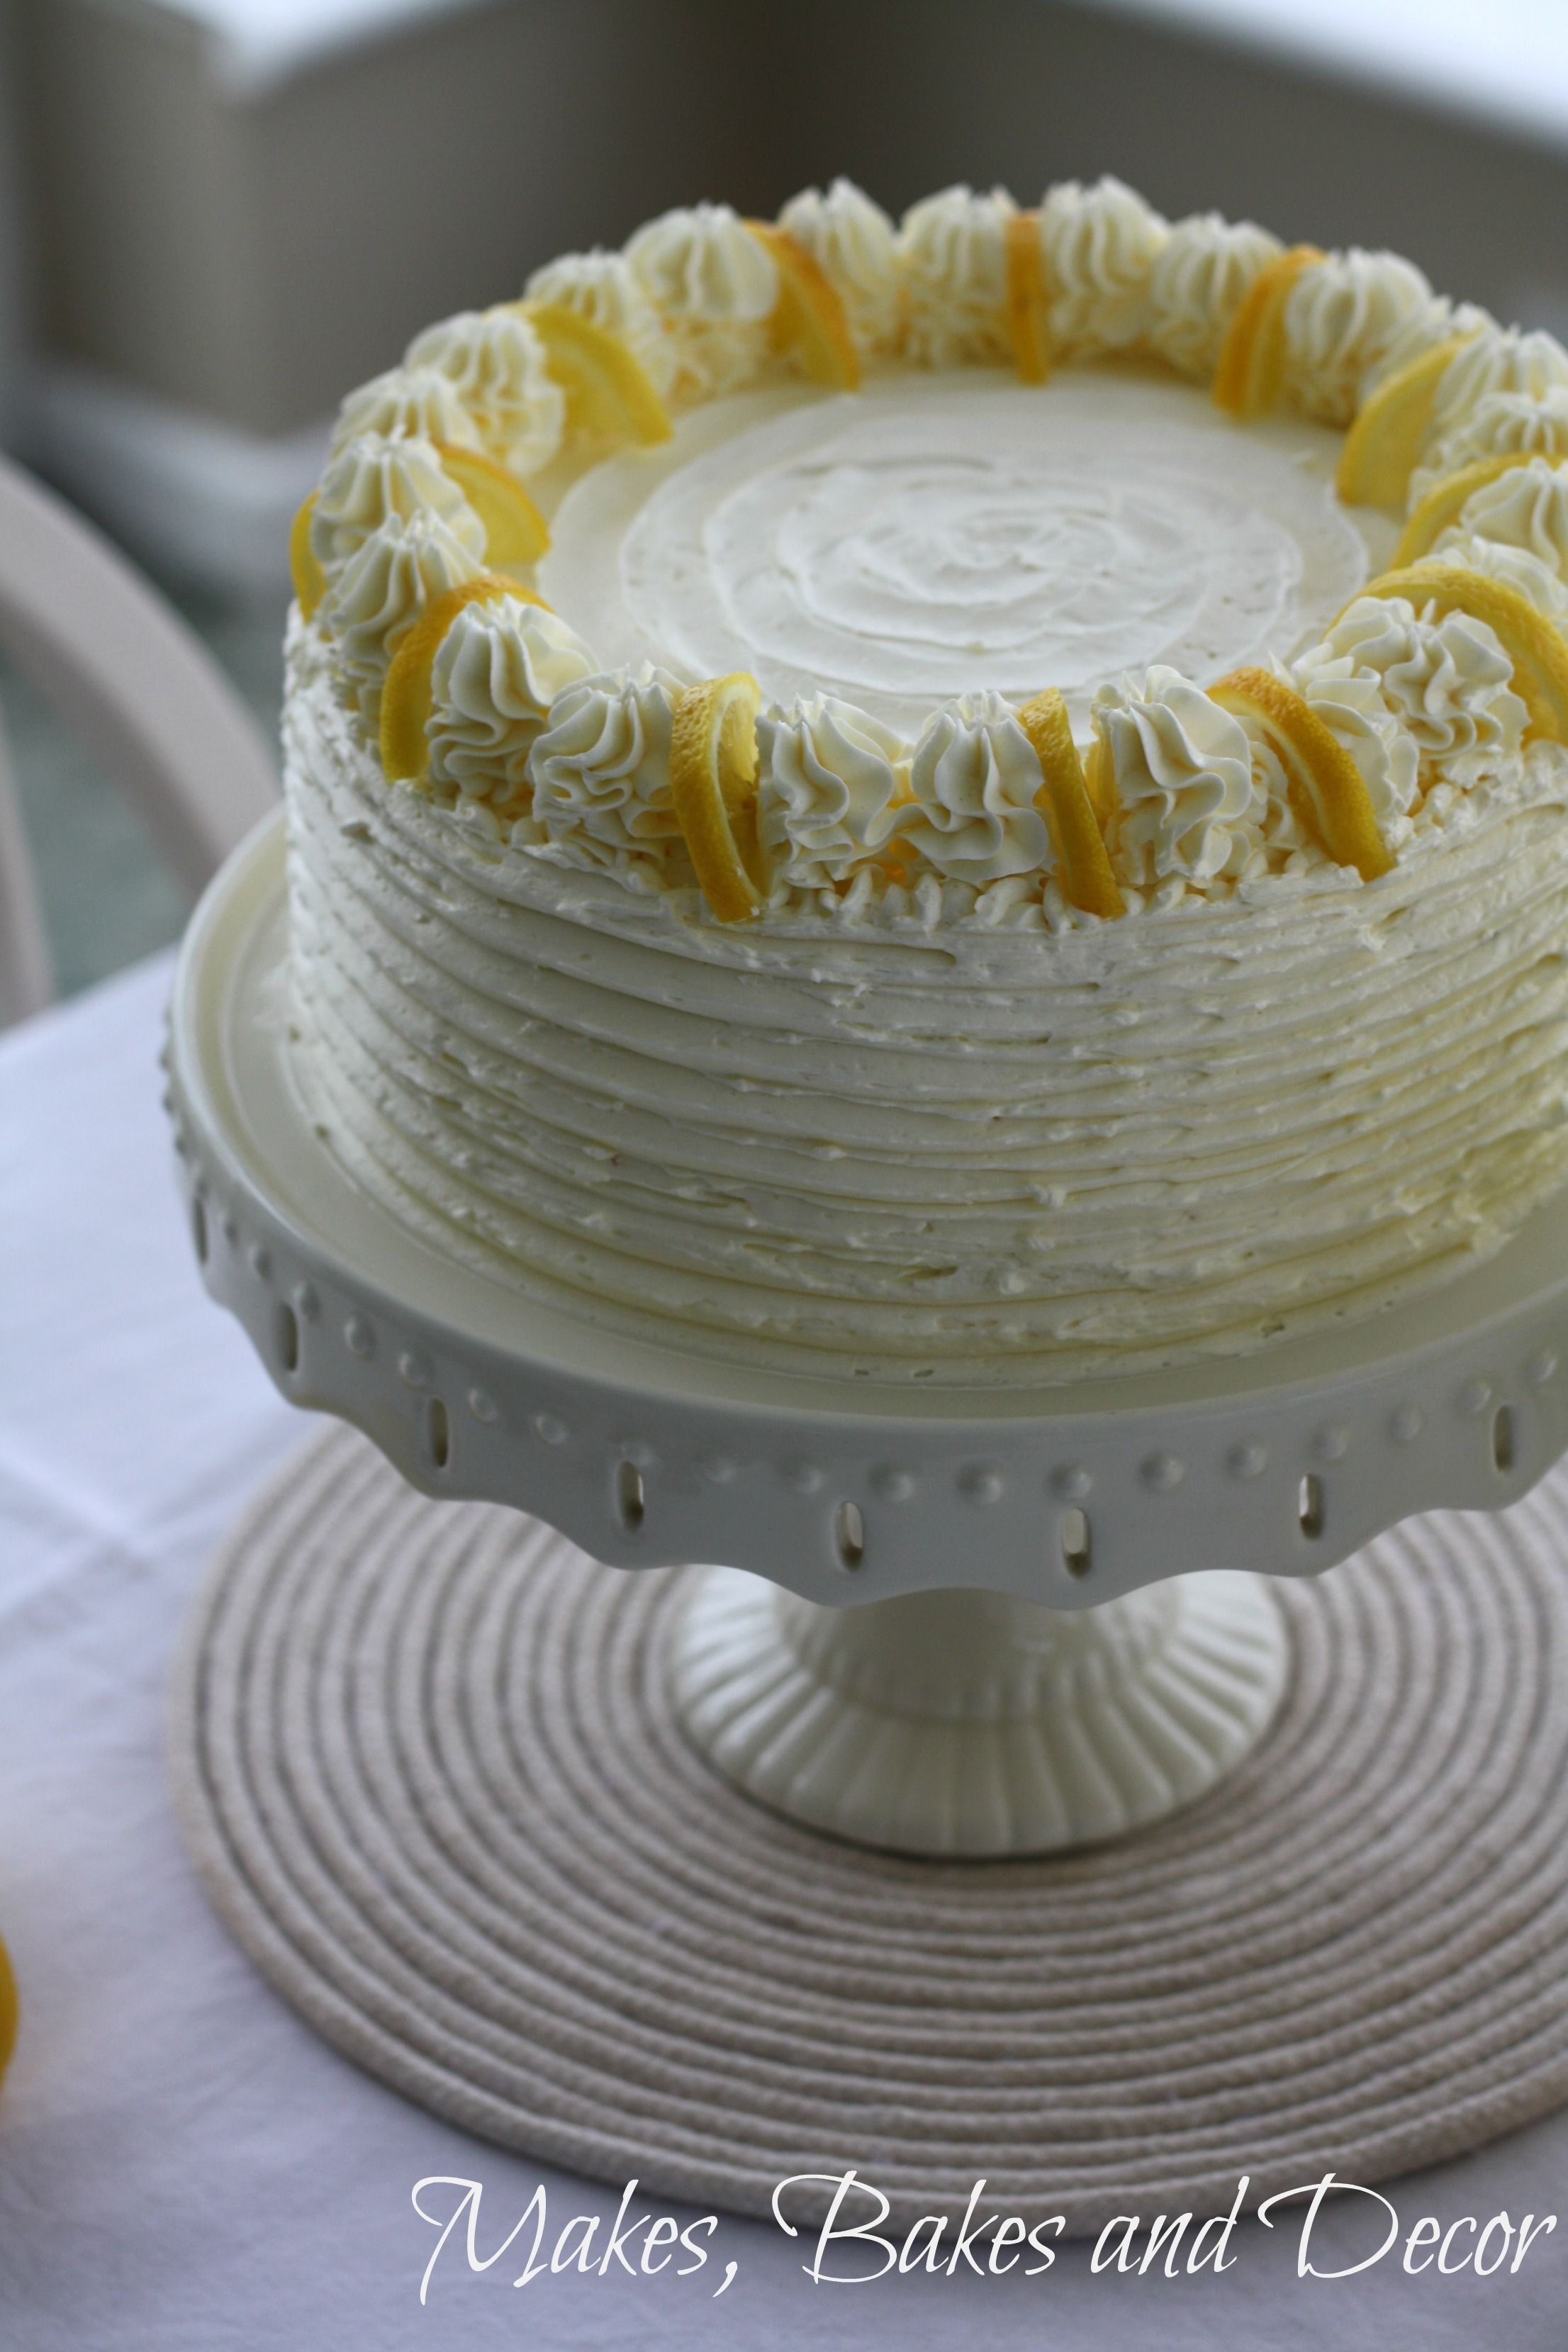 Lemon Drizzle Layer Cake Recipe Cake Savoury Cake Lemon